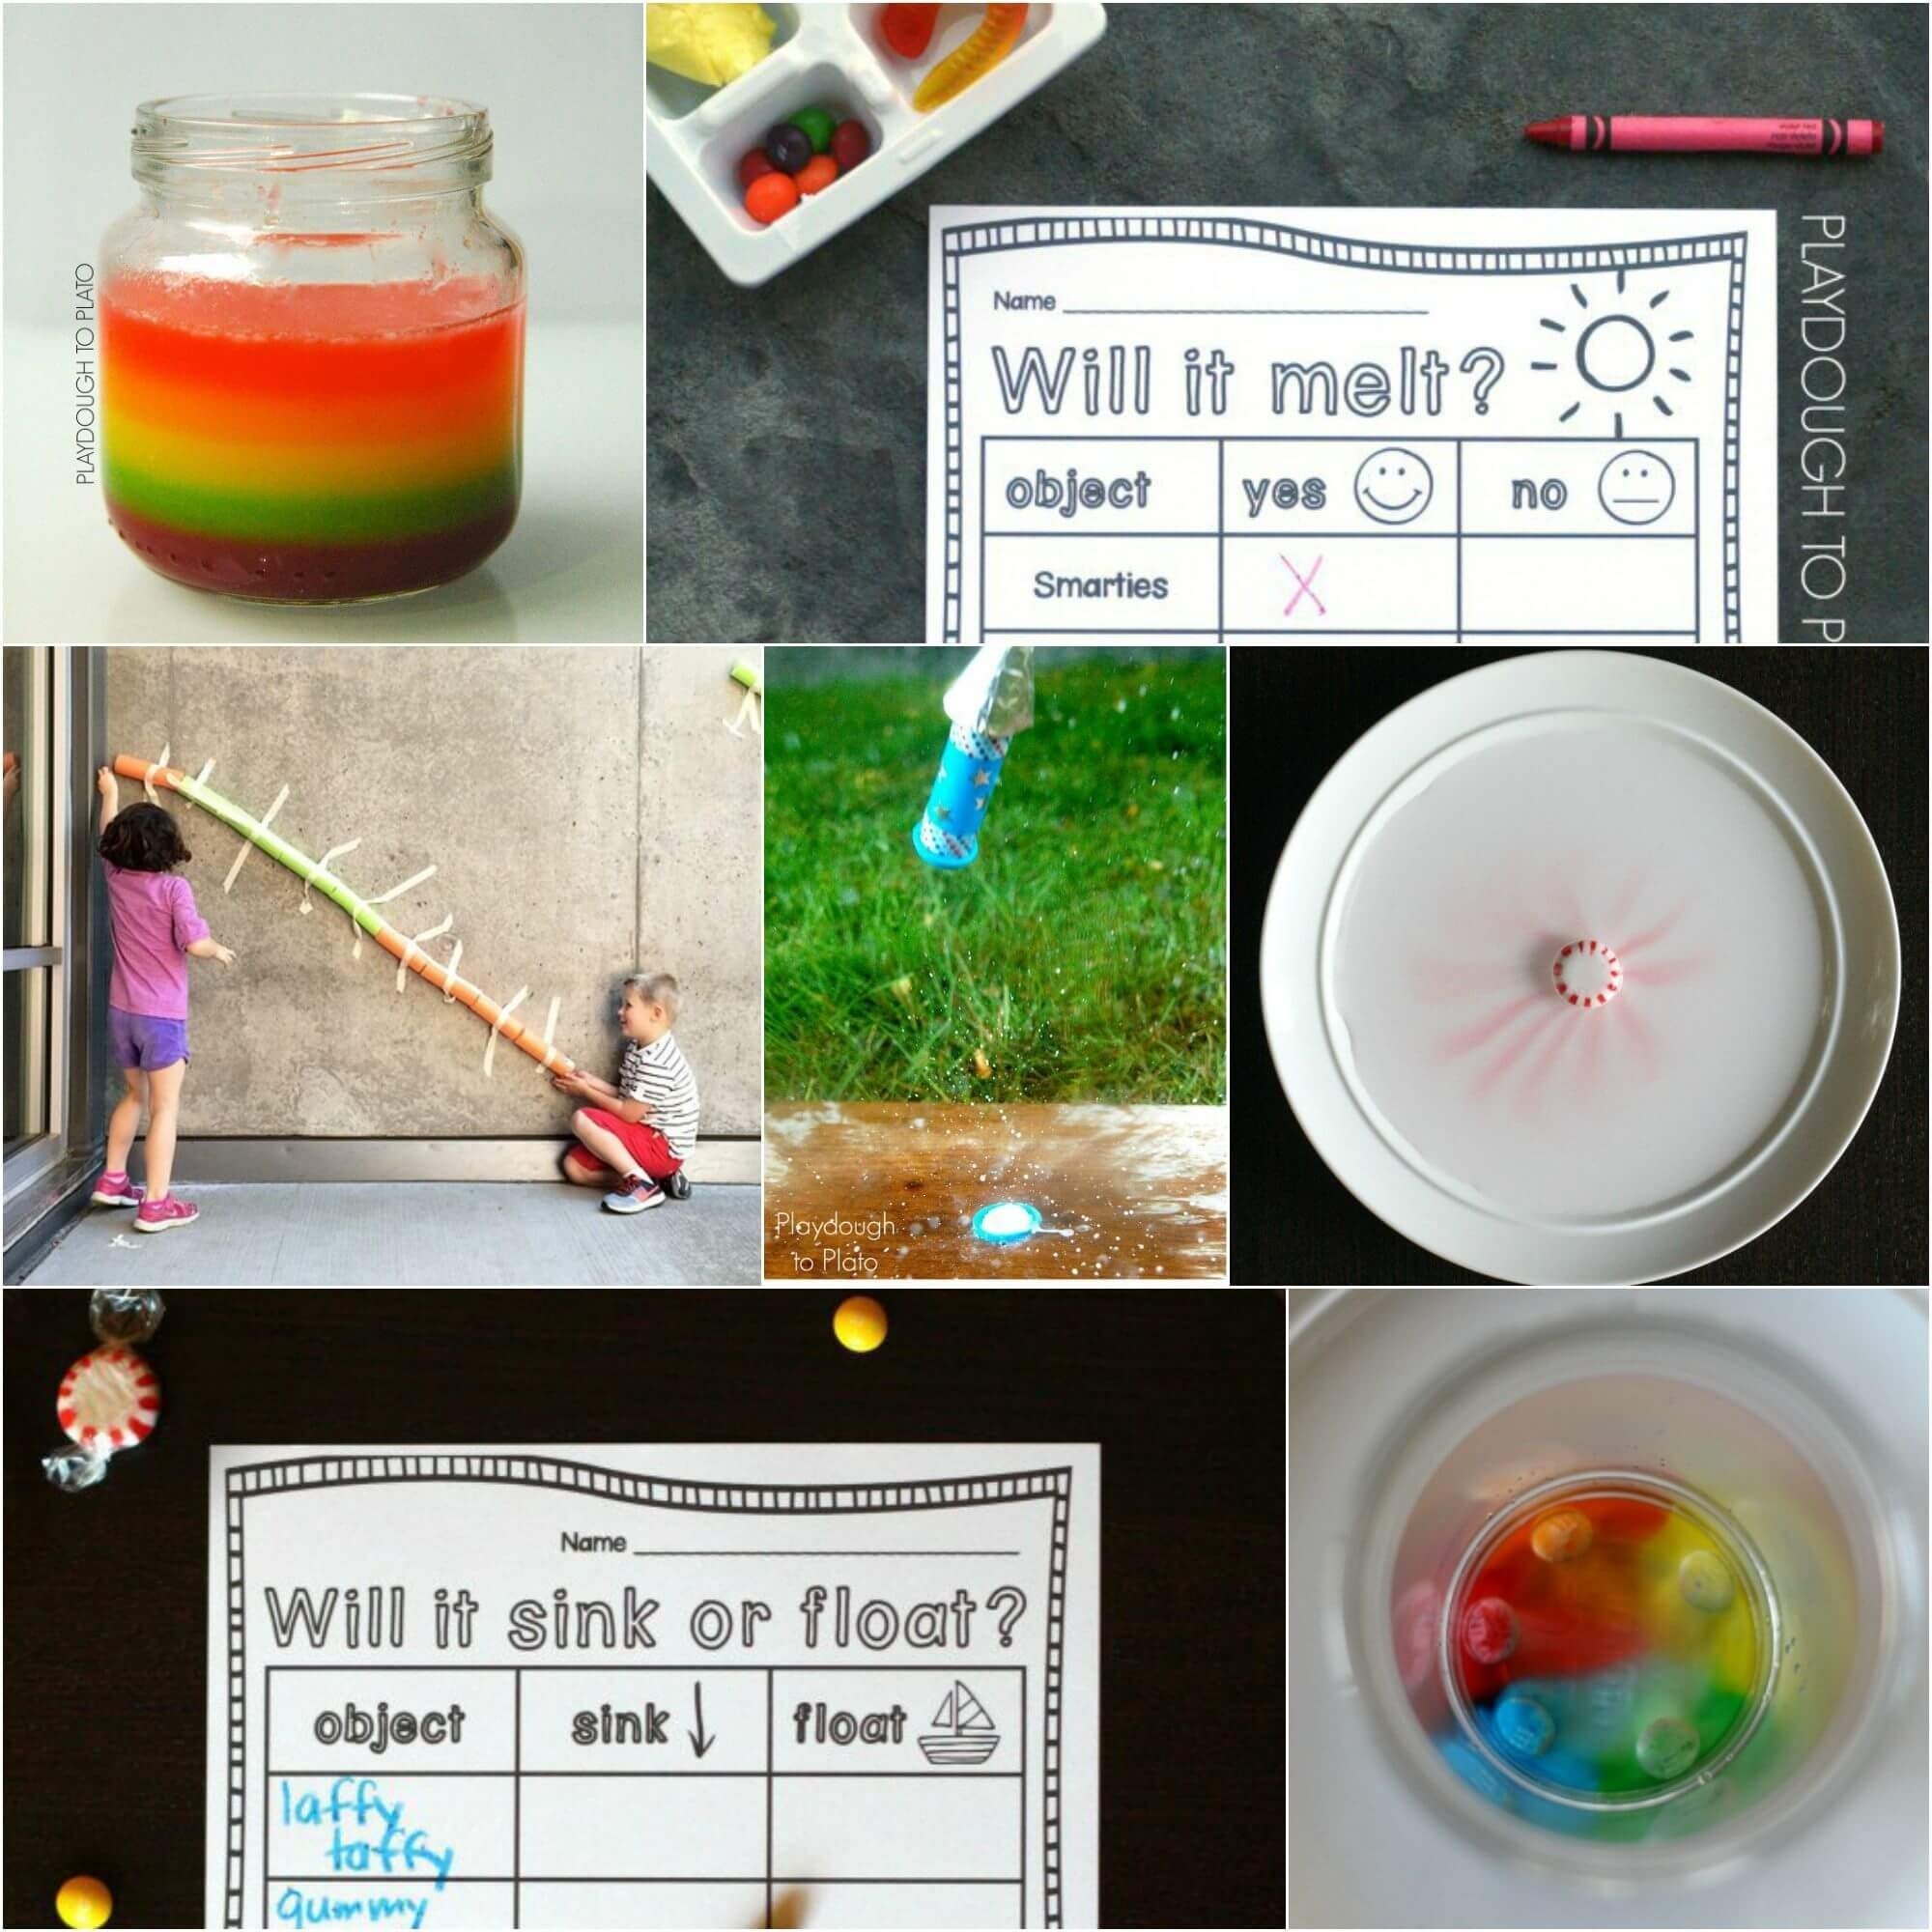 21 candy science experiments - playdough to plato